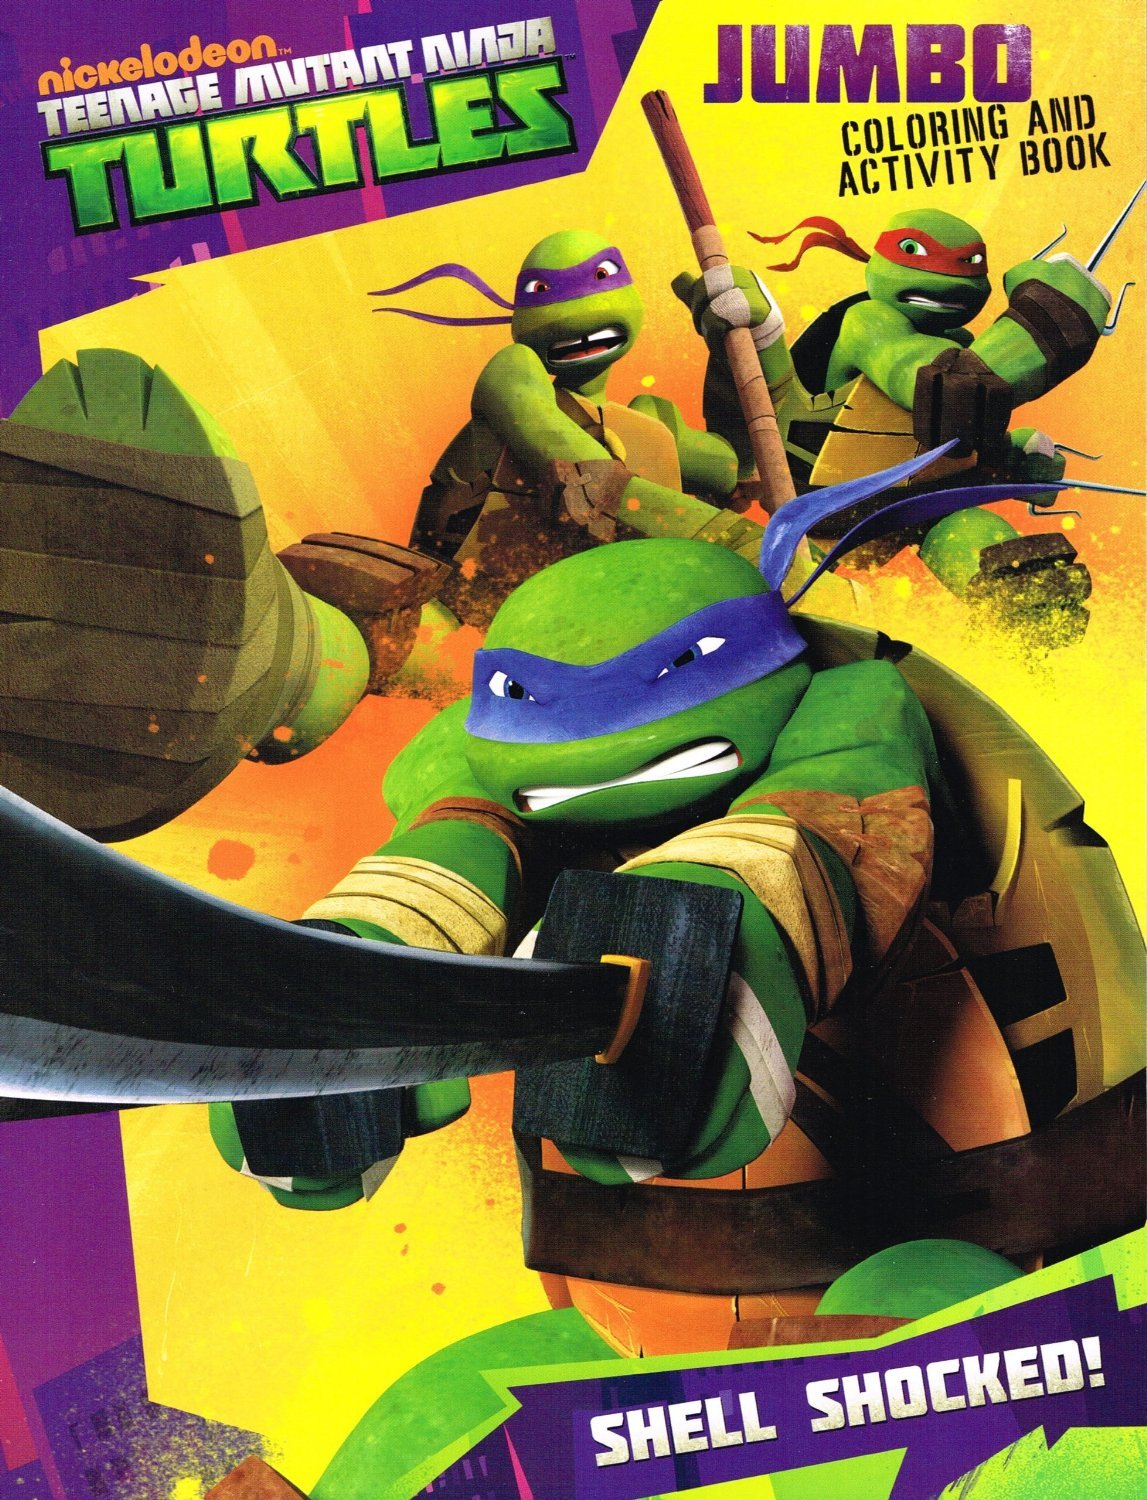 amazoncom teenage mutant ninja turtles jumbo coloring activity book 96pgs shell shocked toys games - Teenage Mutant Ninja Turtles Coloring Book